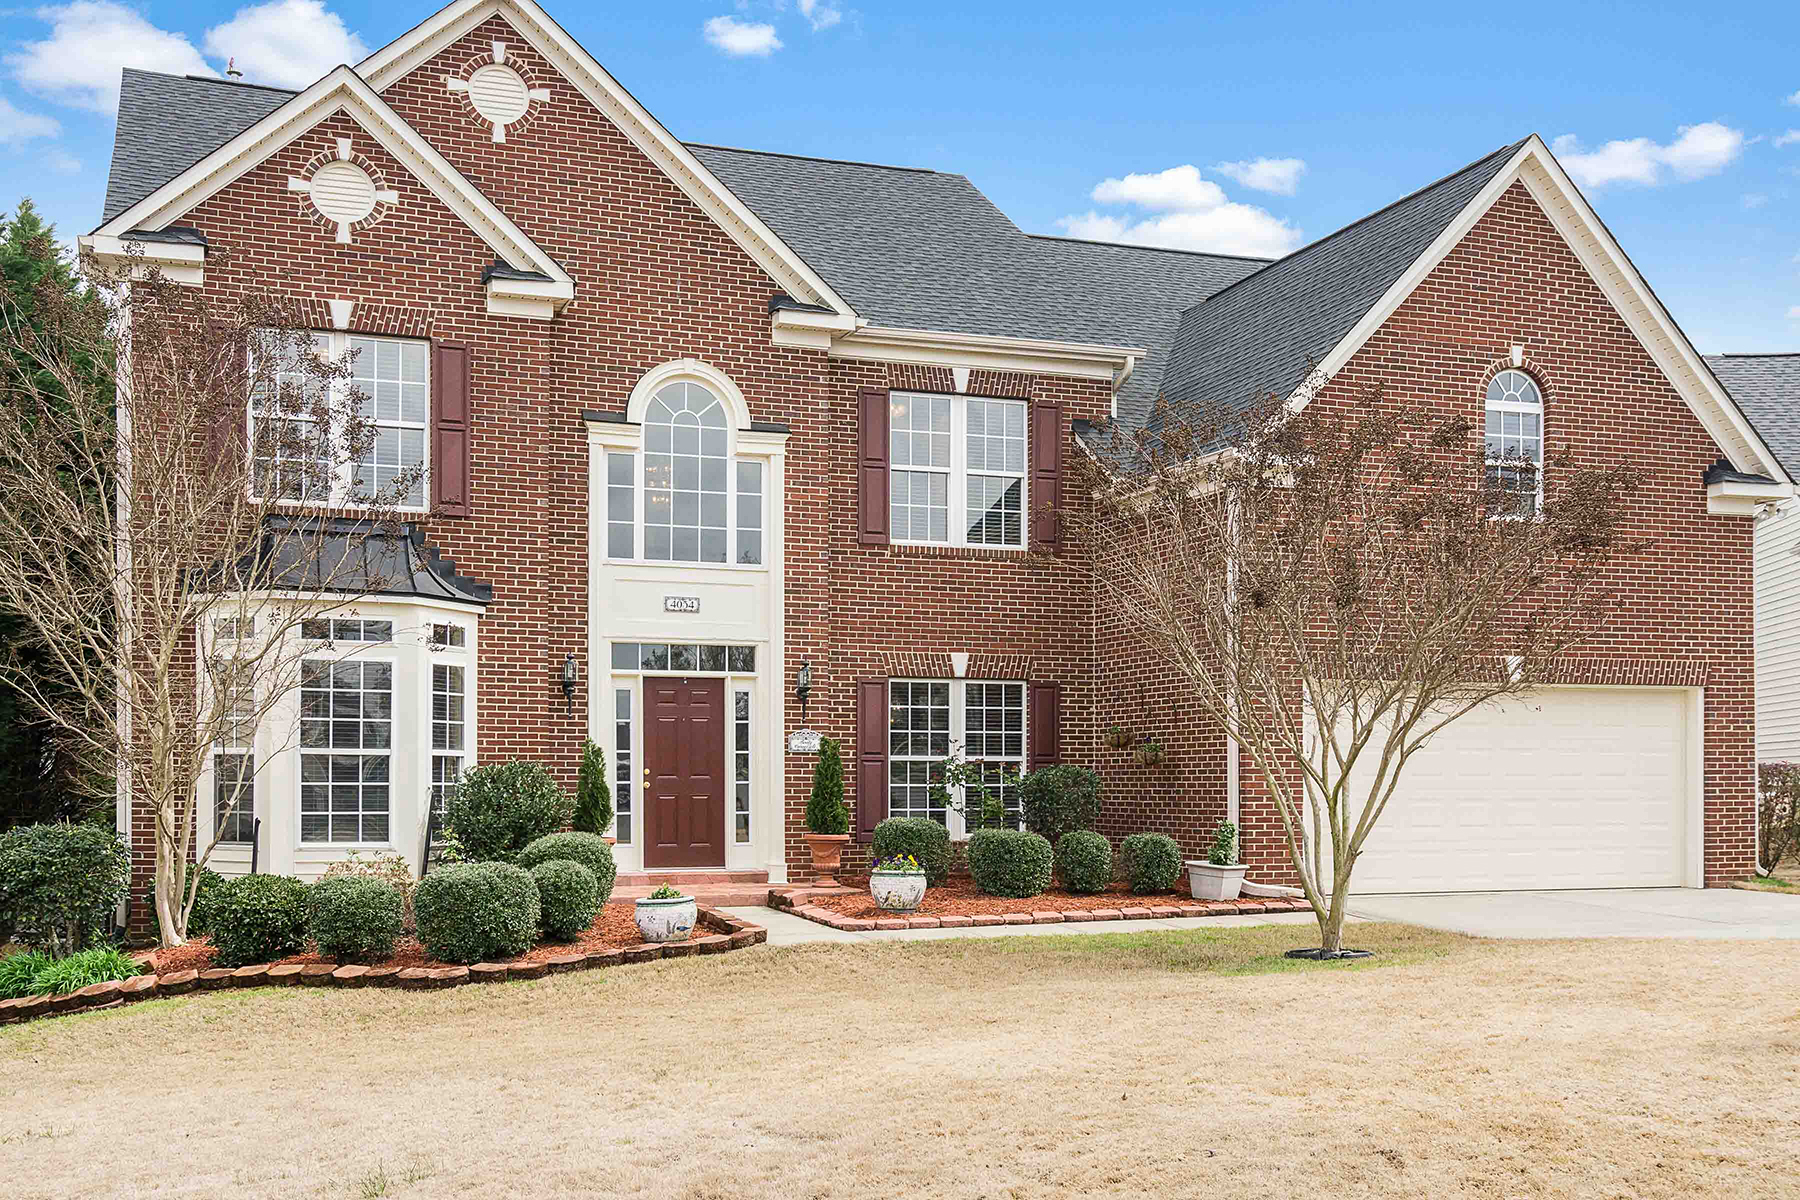 Single Family Home for Sale at GLEN LAUREL 4054 Buckingham Dr, Indian Land, South Carolina 29707 United States